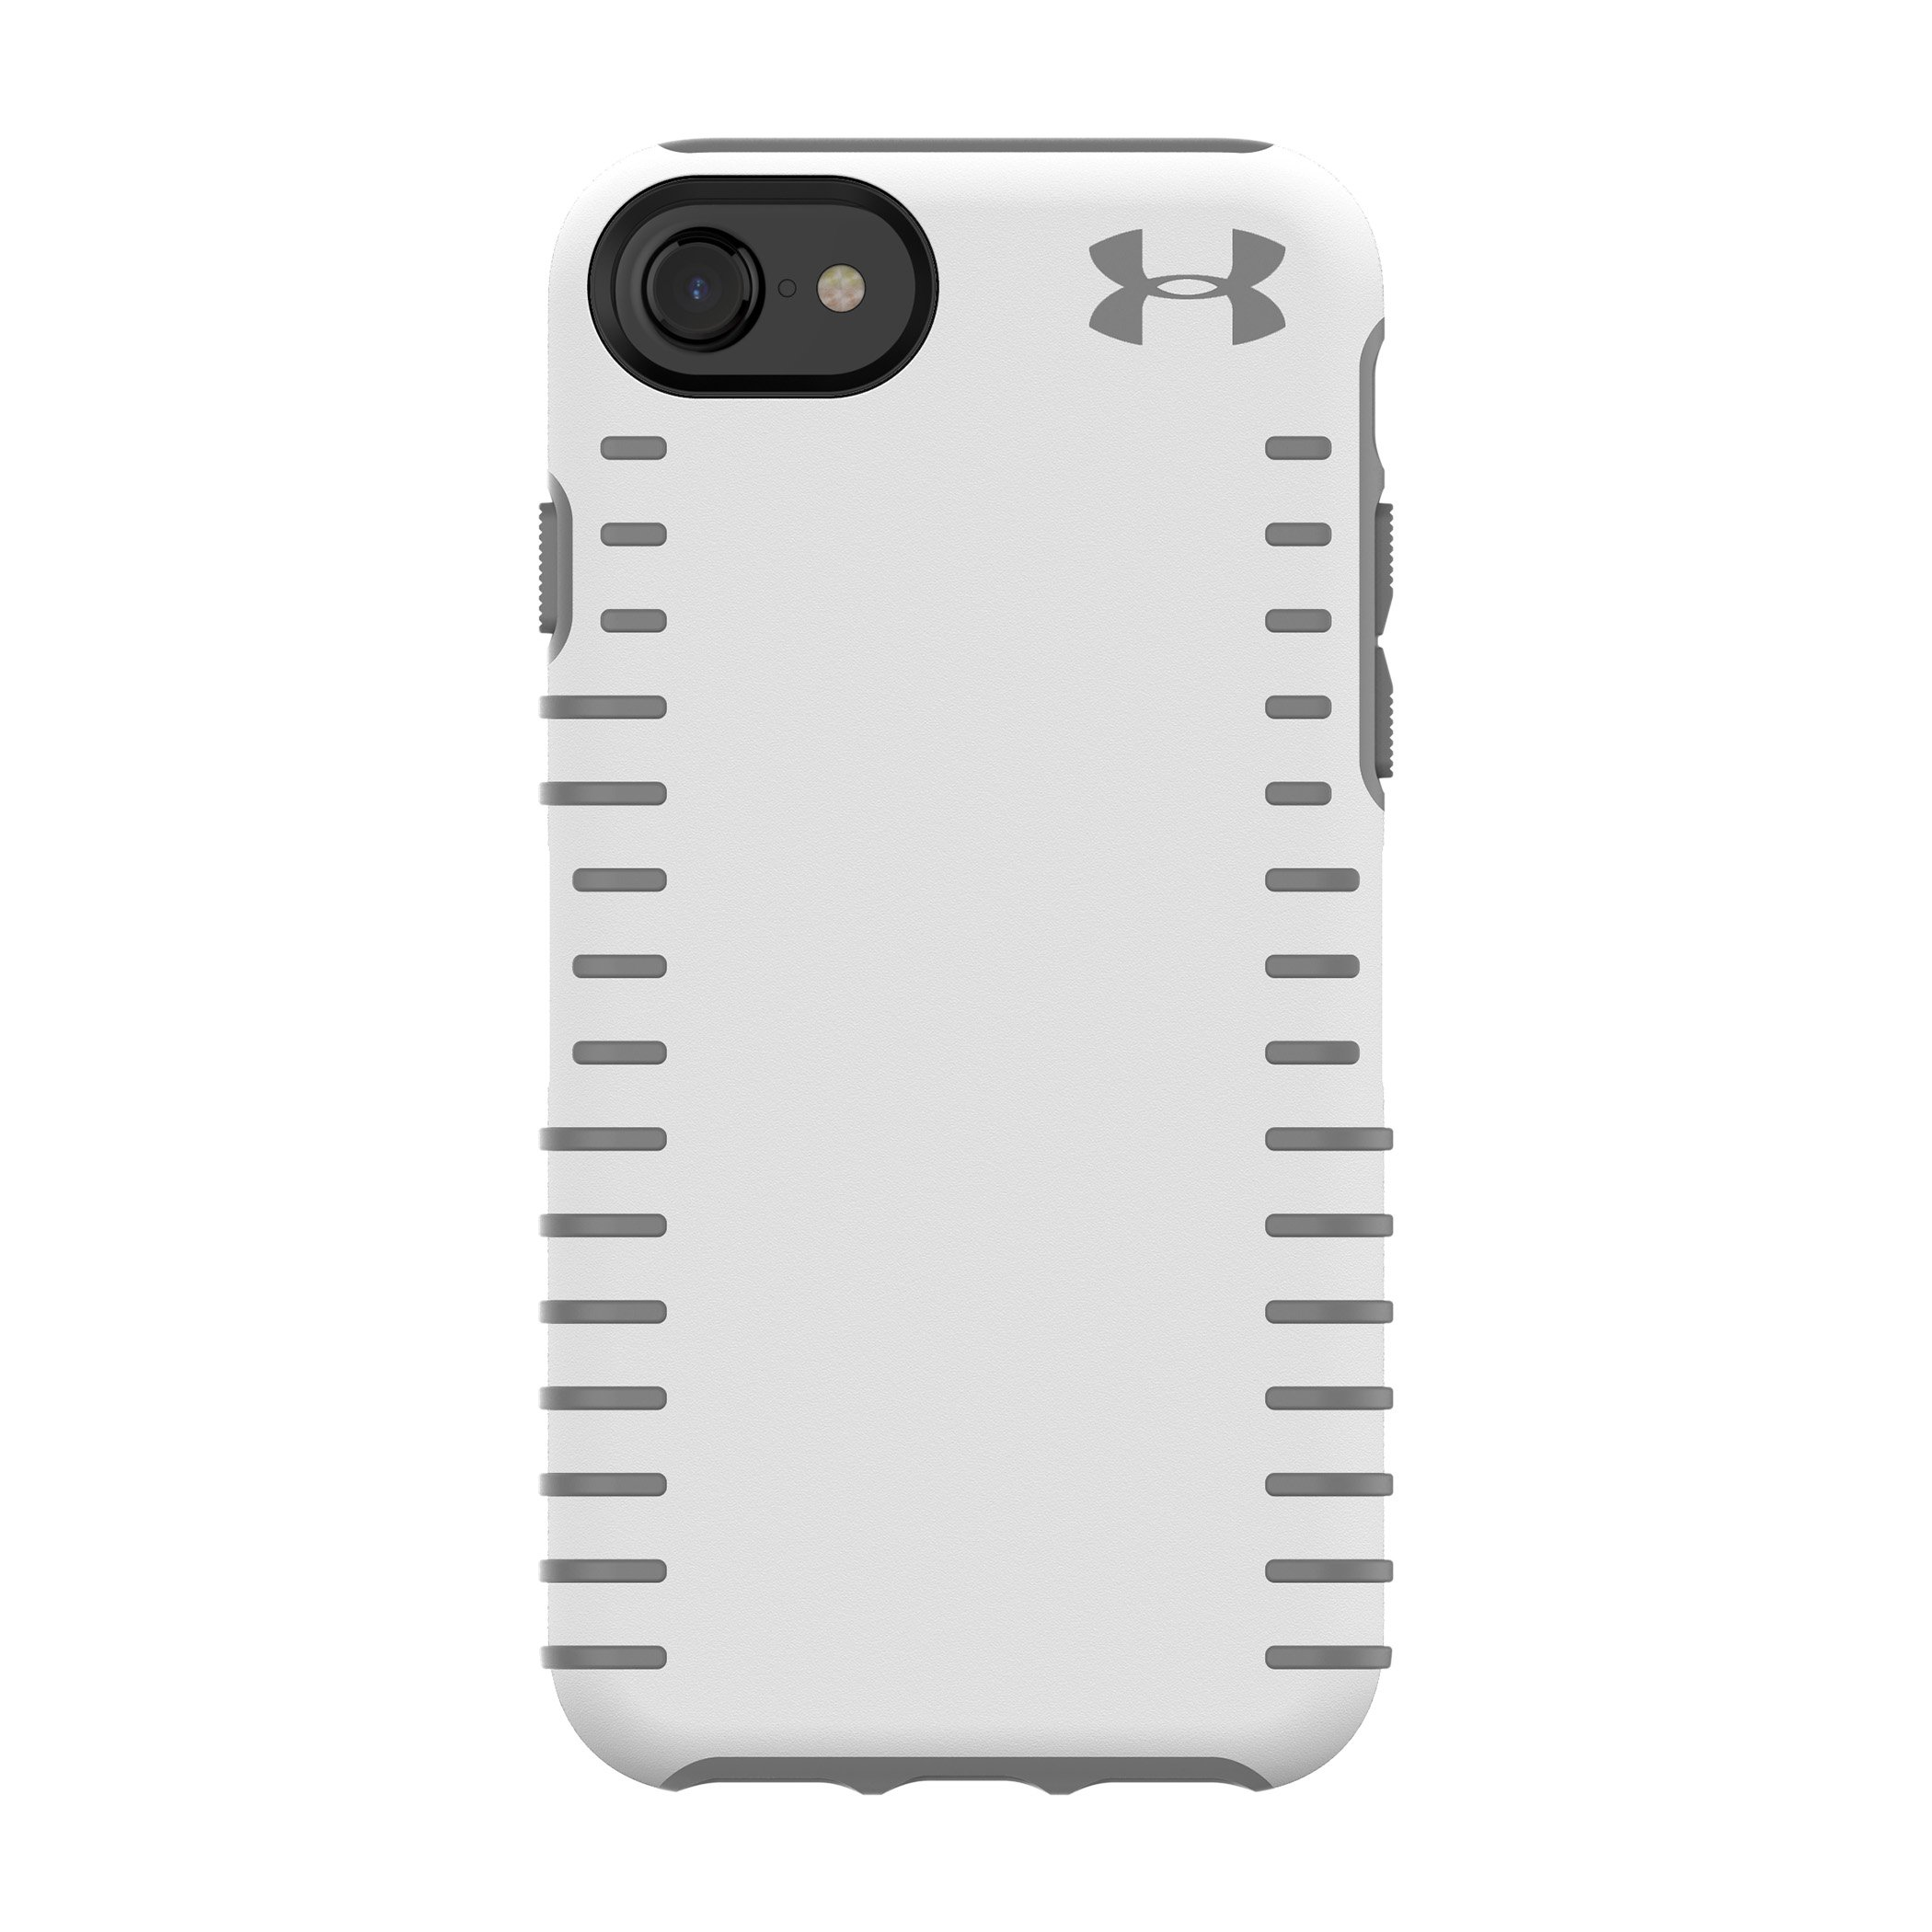 Under Armour UA Protect Grip Case for iPhone 8, iPhone 7 & iPhone 6/6s - White/Graphite